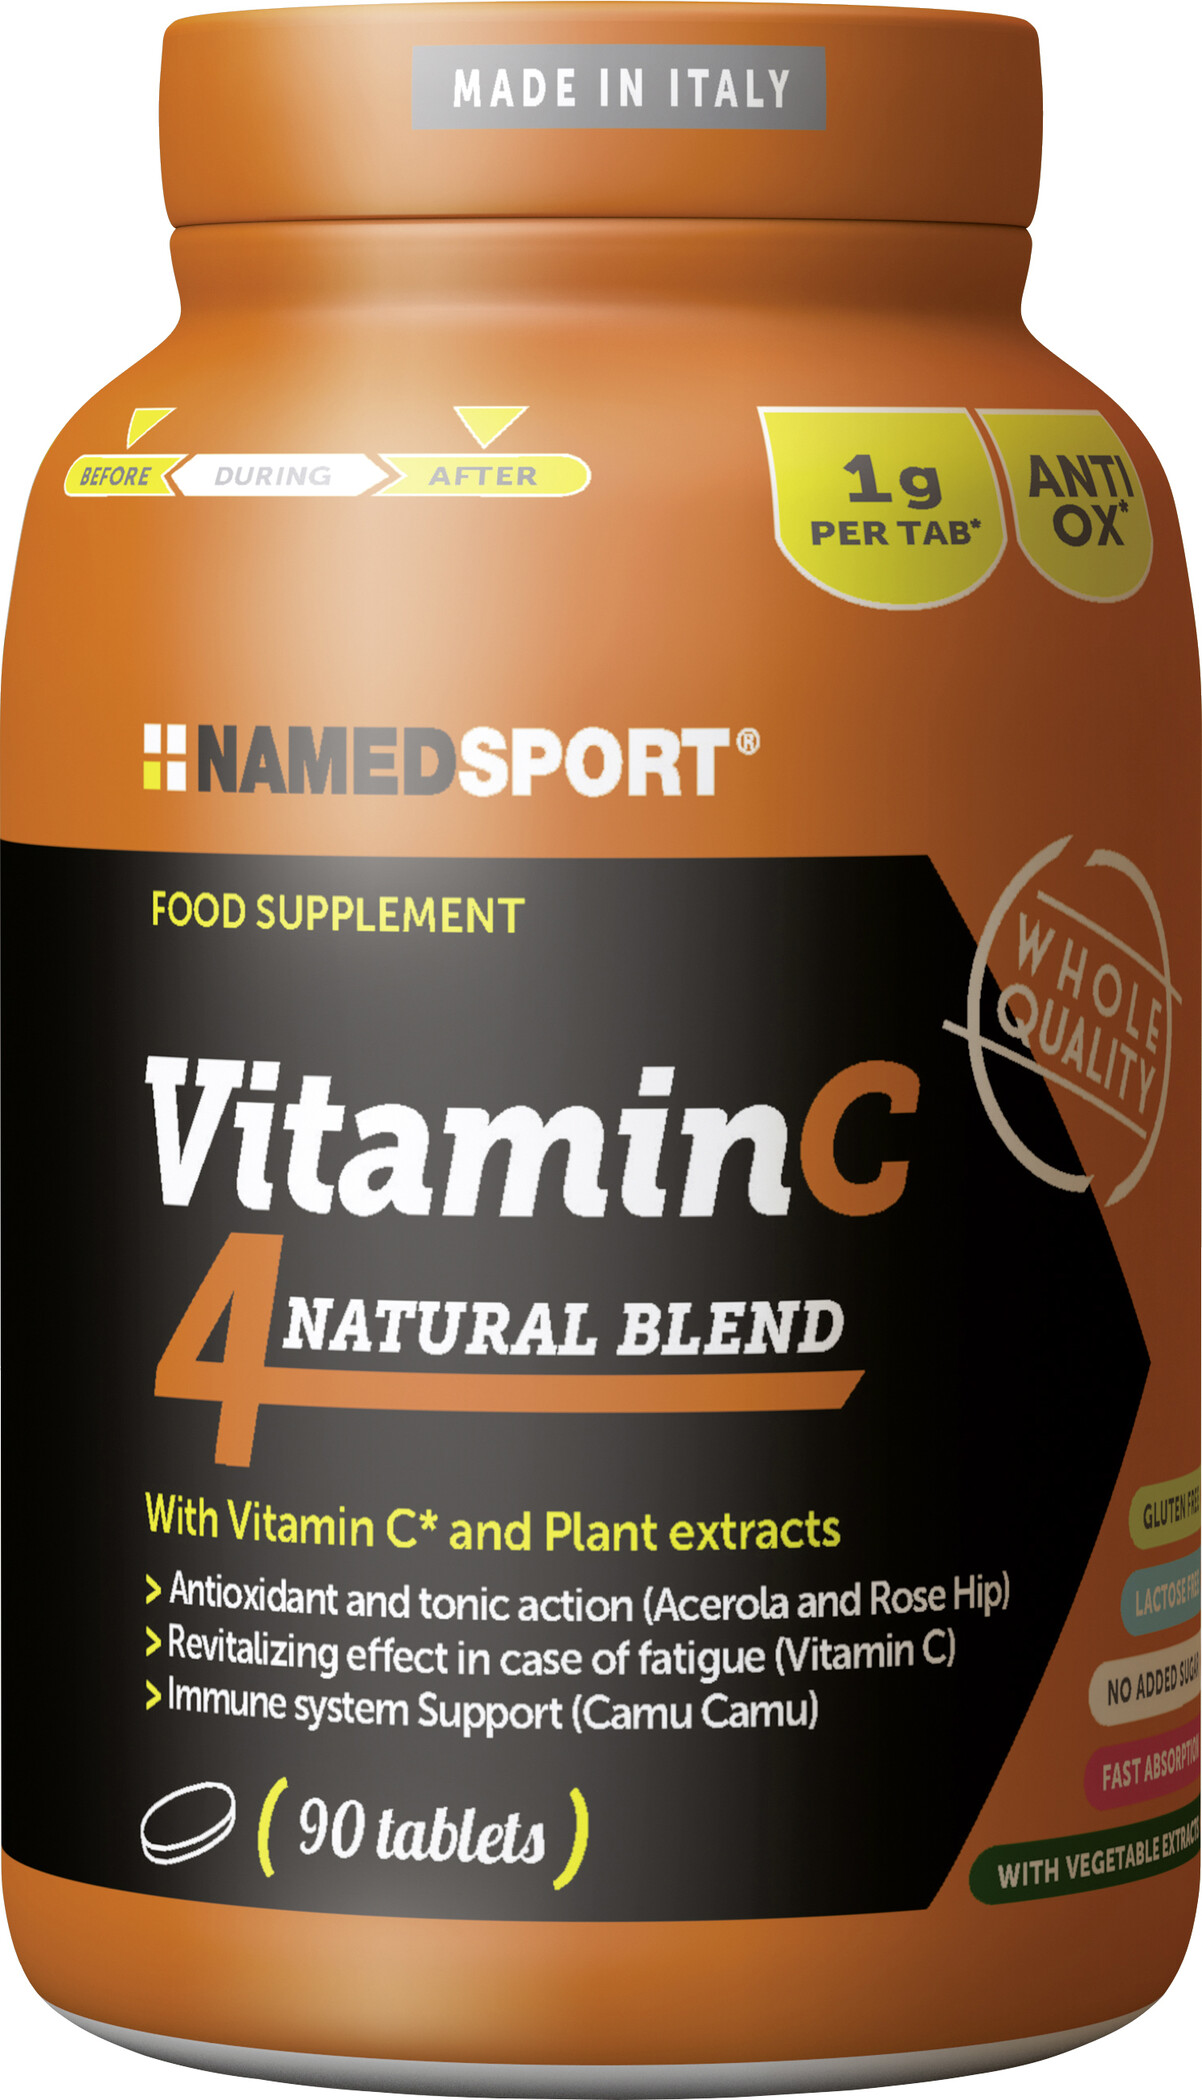 NAMEDSPORT Vitamin C4 90 tabletter, Neutral (2019) | Energi og kosttilskud > Tilbebør